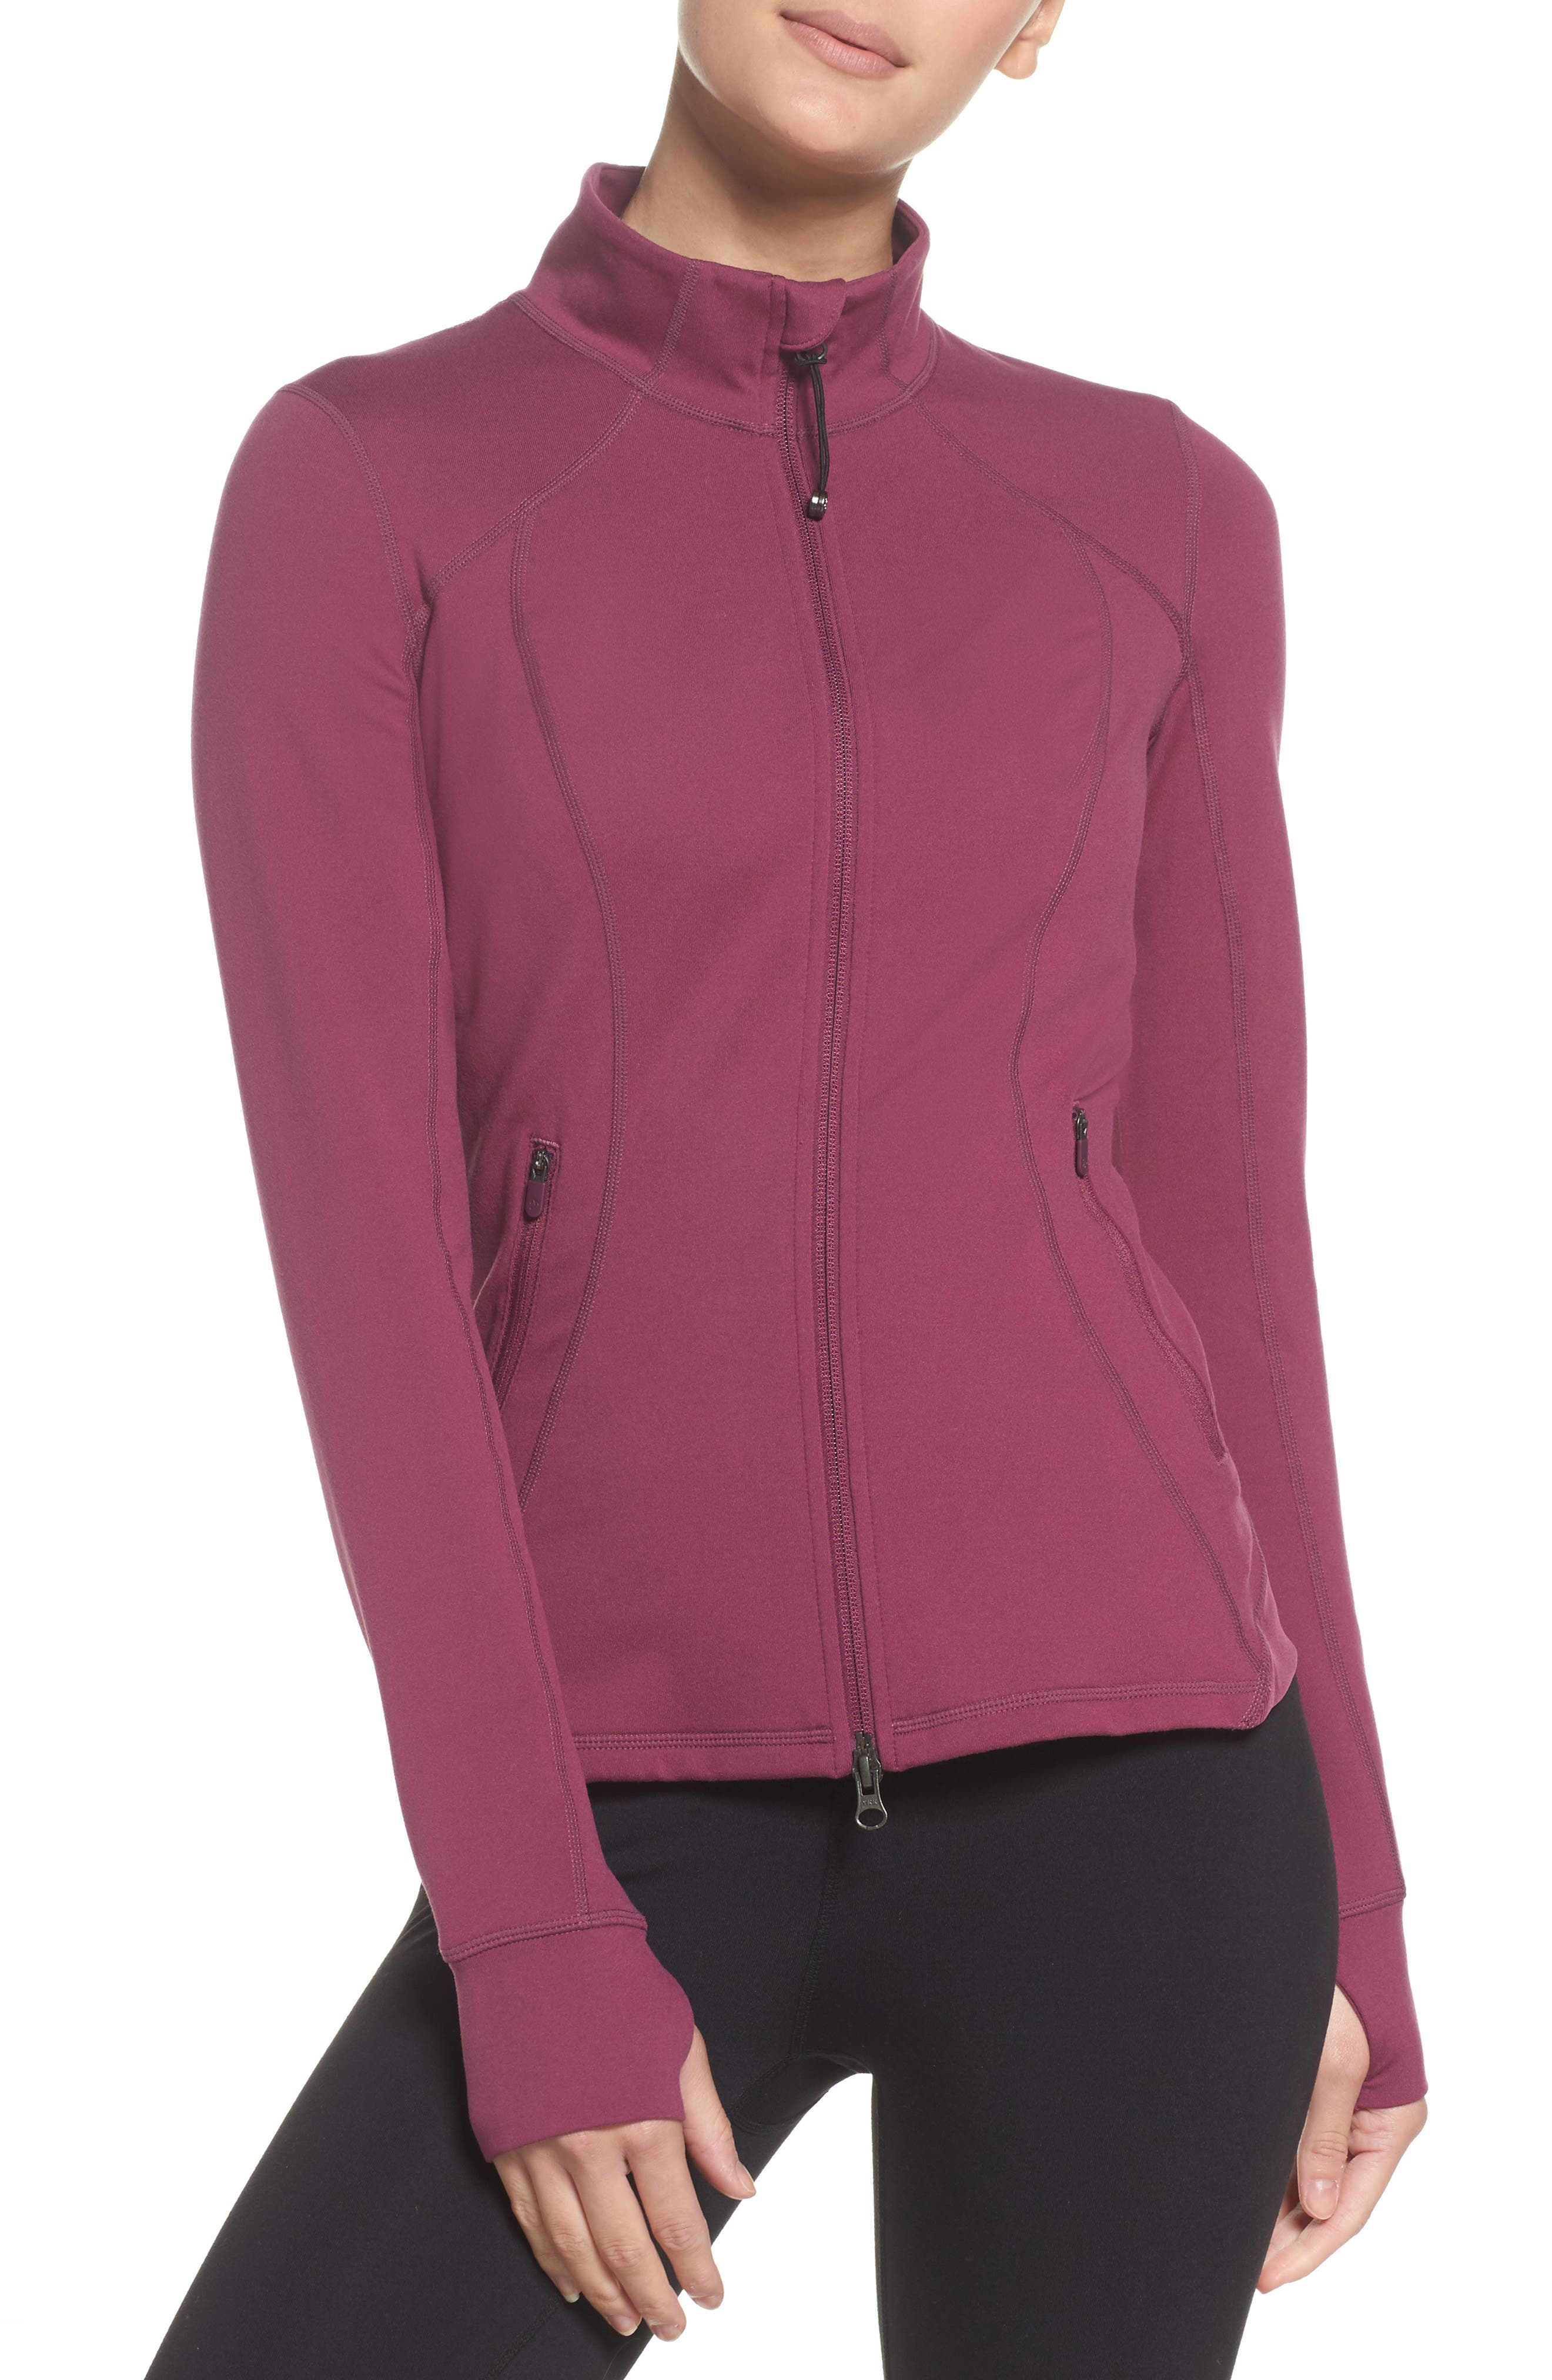 Zella Presence Training Jacket